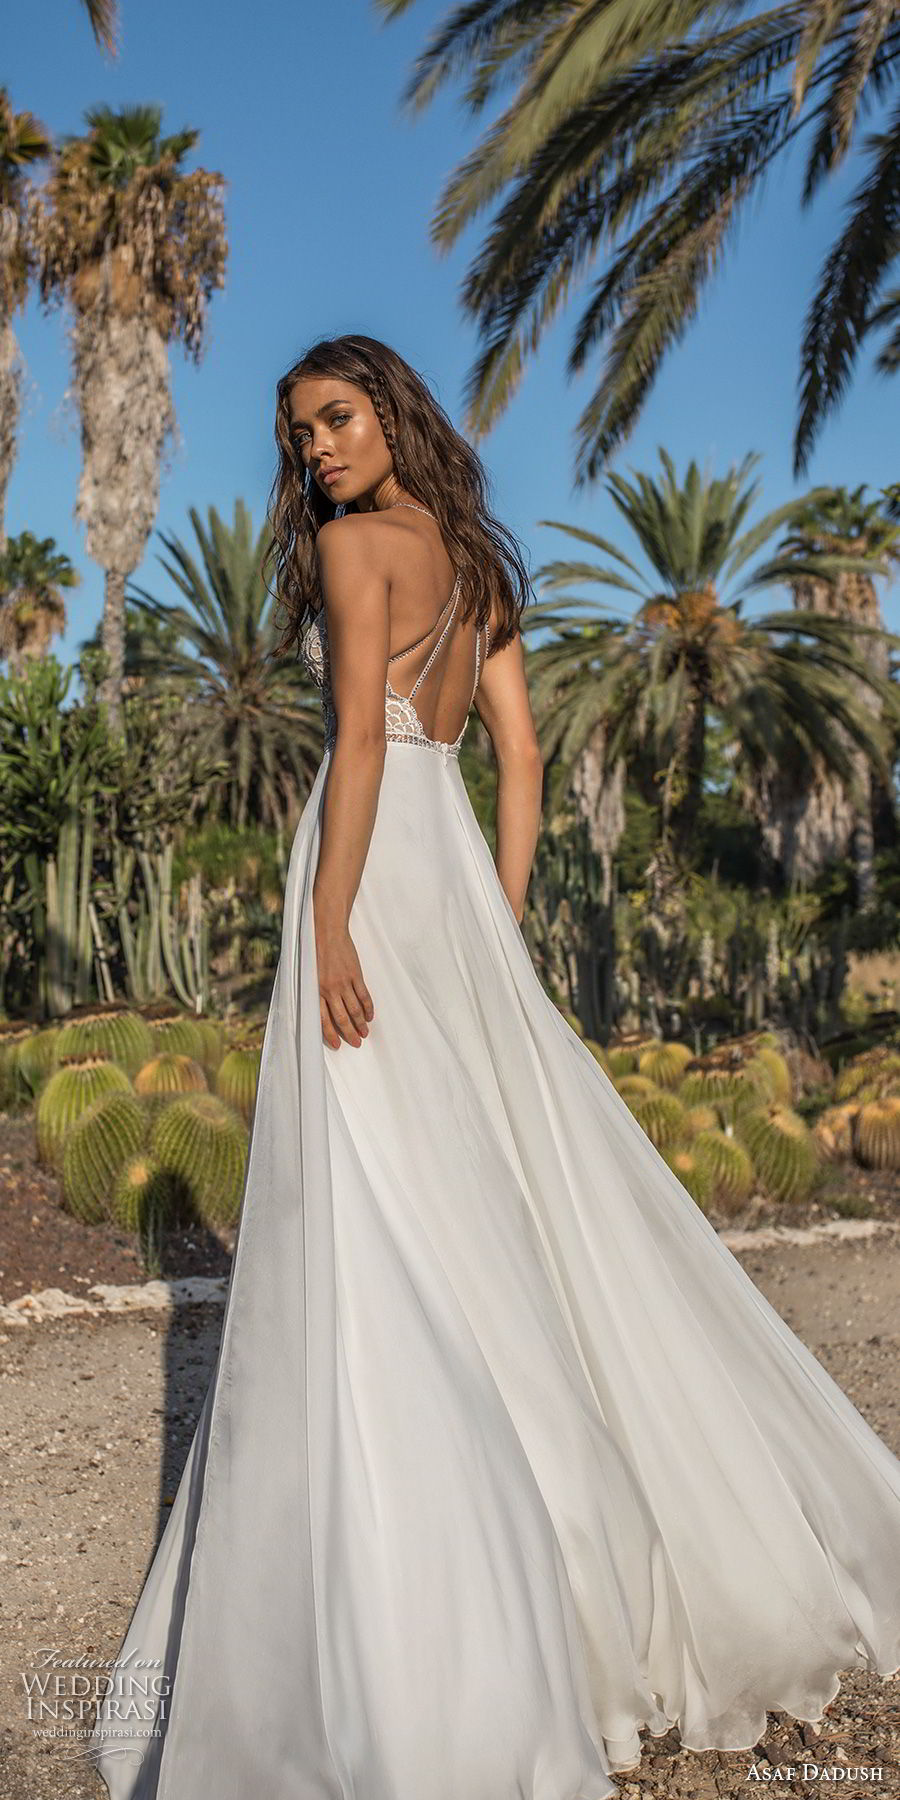 asaf dadush 2018 bridal spaghetti strap deep plunging sweetheart neckline heavily embellised bodice double slit slirt romantic soft a line wedding dress open strap back sweep train (10) bv